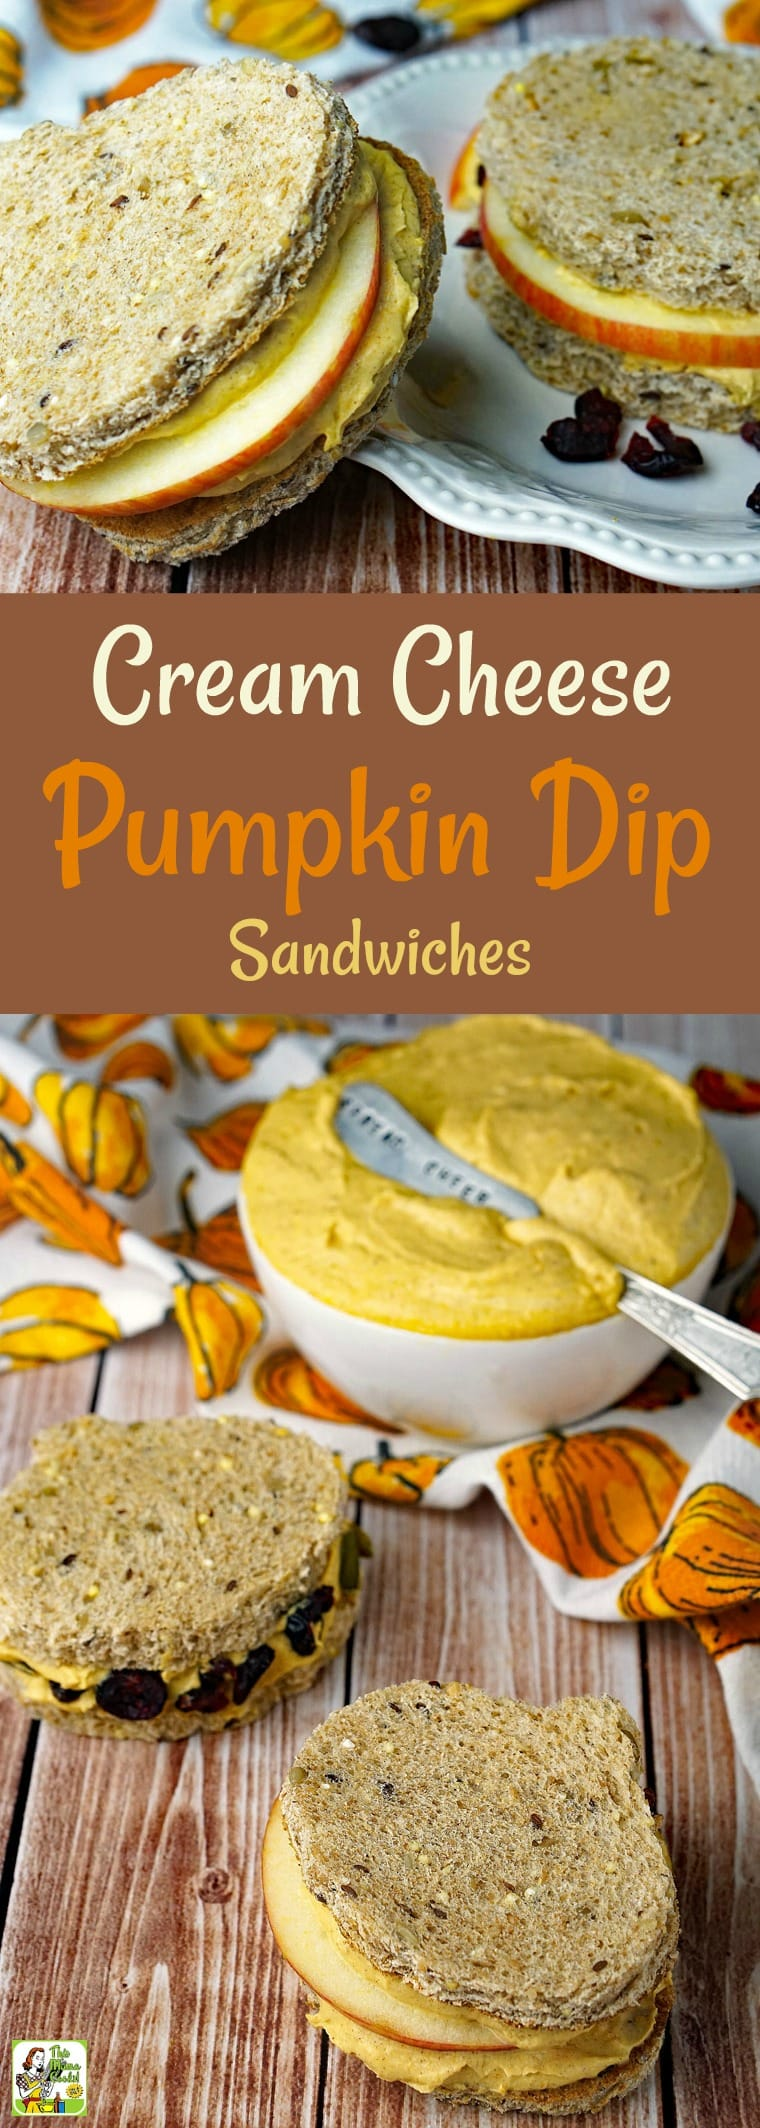 How to make Cream Cheese Pumpkin Dip Sandwiches. These Cream Cheese Pumpkin Dip Sandwiches are terrific for afterschool snacks, a healthy breakfast treat, or as Halloween or Thanksgiving party appetizers. This easy pumpkin dip recipe is healthy, low fat and naturally gluten free. #recipe #easy #recipeoftheday #healthyrecipes #glutenfree #easyrecipes #pumpkin #thanksgiving #halloween #creamcheese #dip #pumpkindip #sandwichspread #healthydip #sandwich #sandwiches